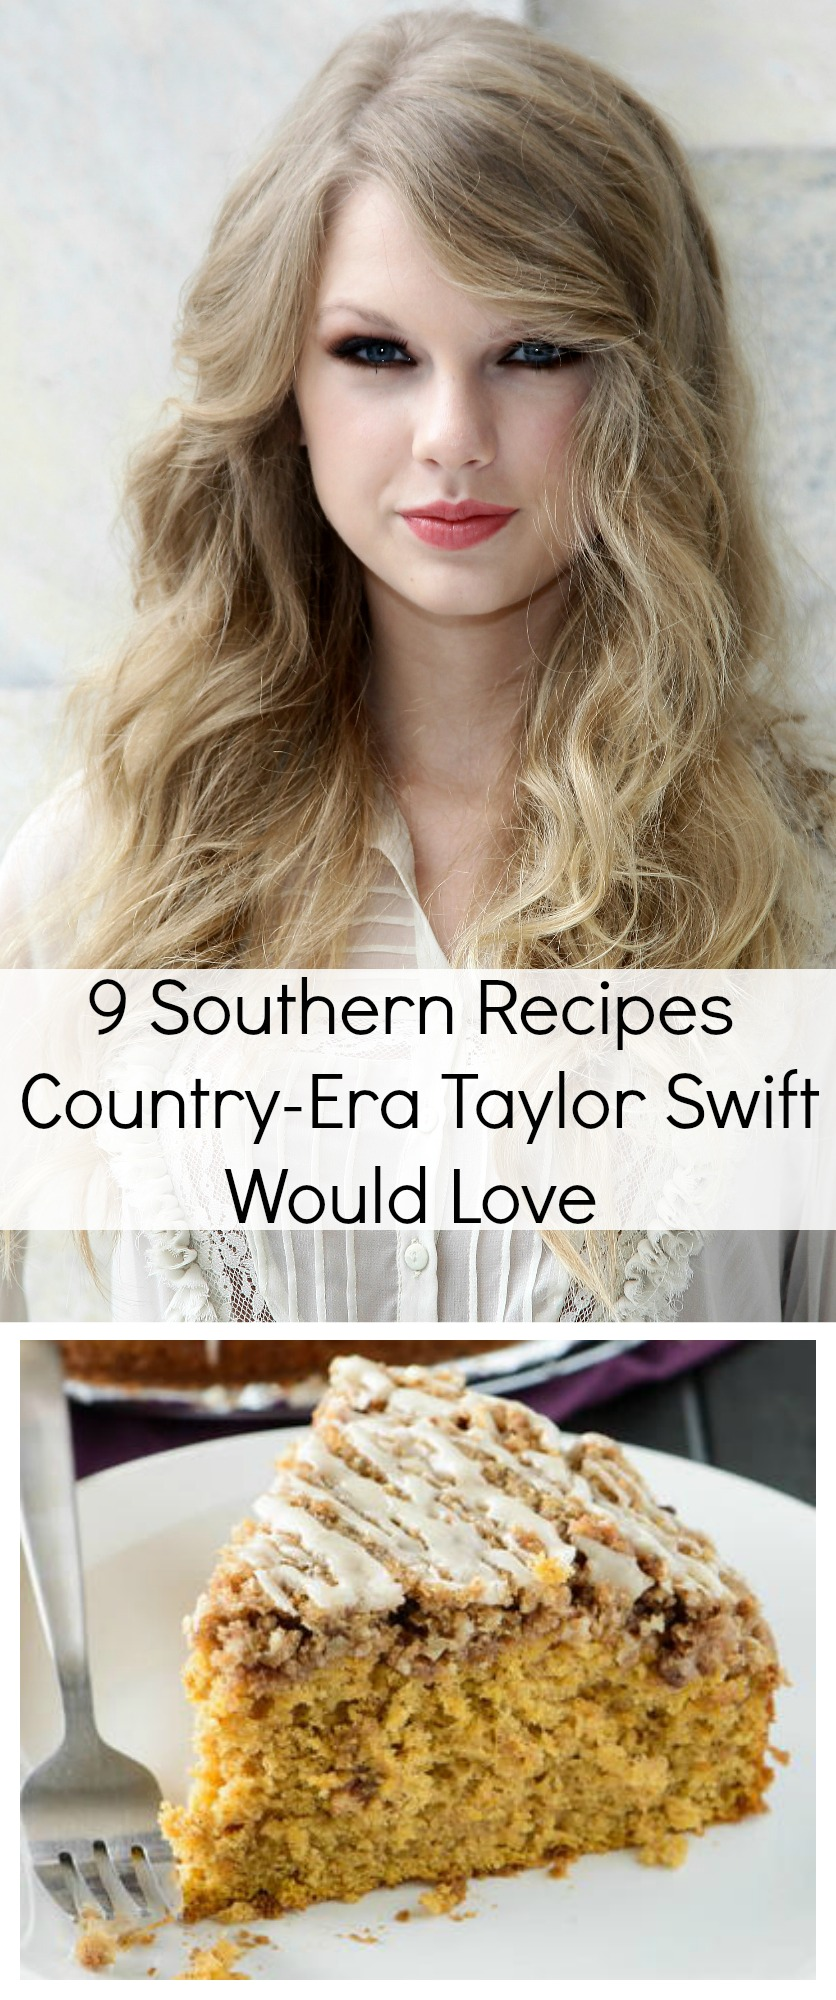 9 Southern Recipes Country-Era Taylor Swift Would Love